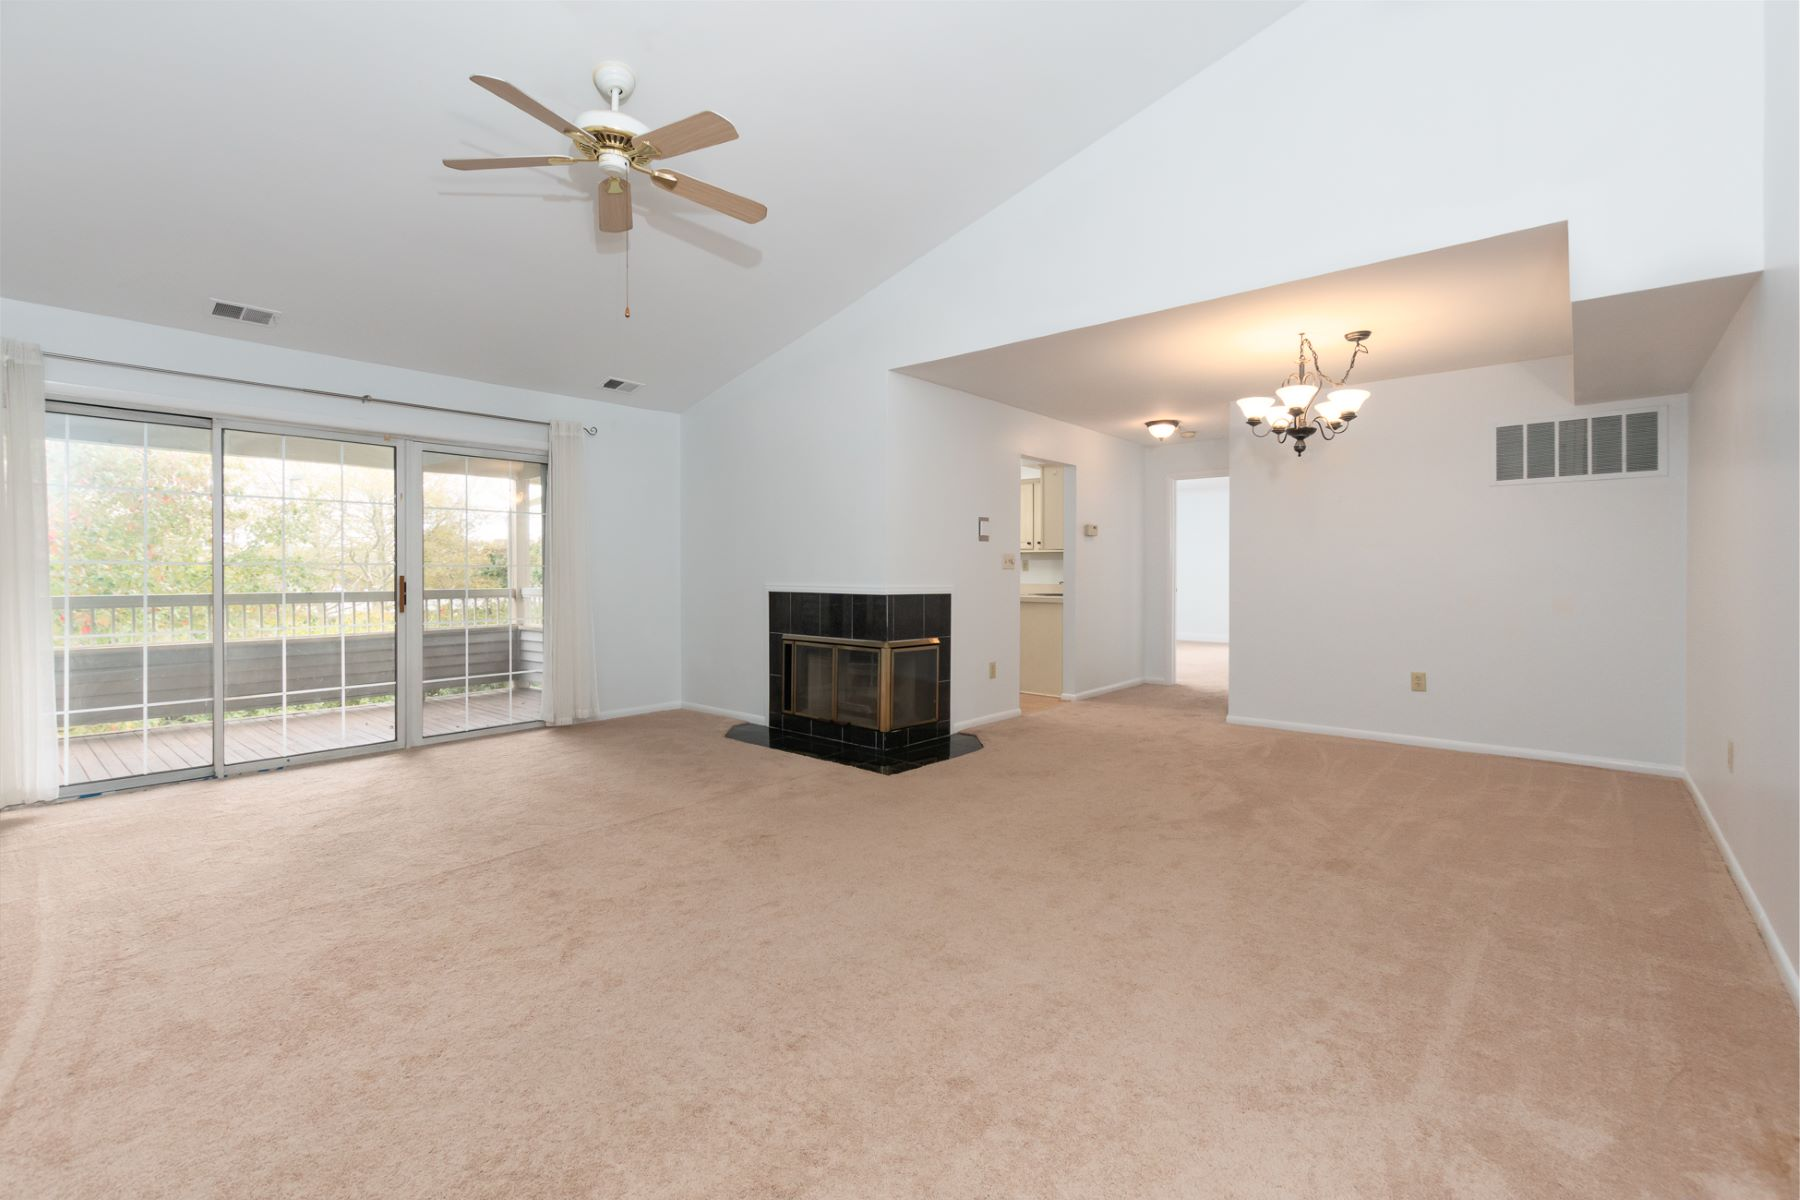 Additional photo for property listing at Spacious Penthouse in Colonnade Pointe! 103 Sequoia Court, #11, Princeton, New Jersey 08540 United States